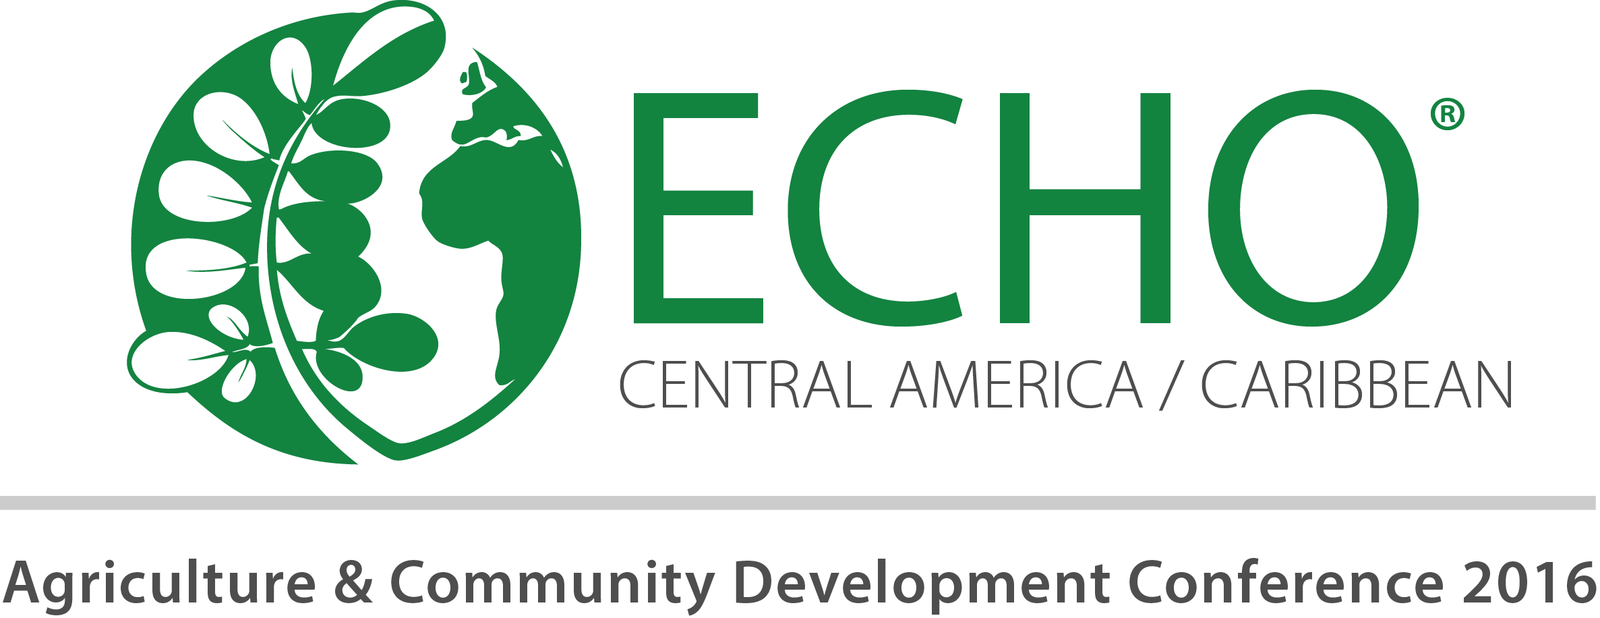 Central America / Caribbean Agriculture & Community Development Conference Logo 2016